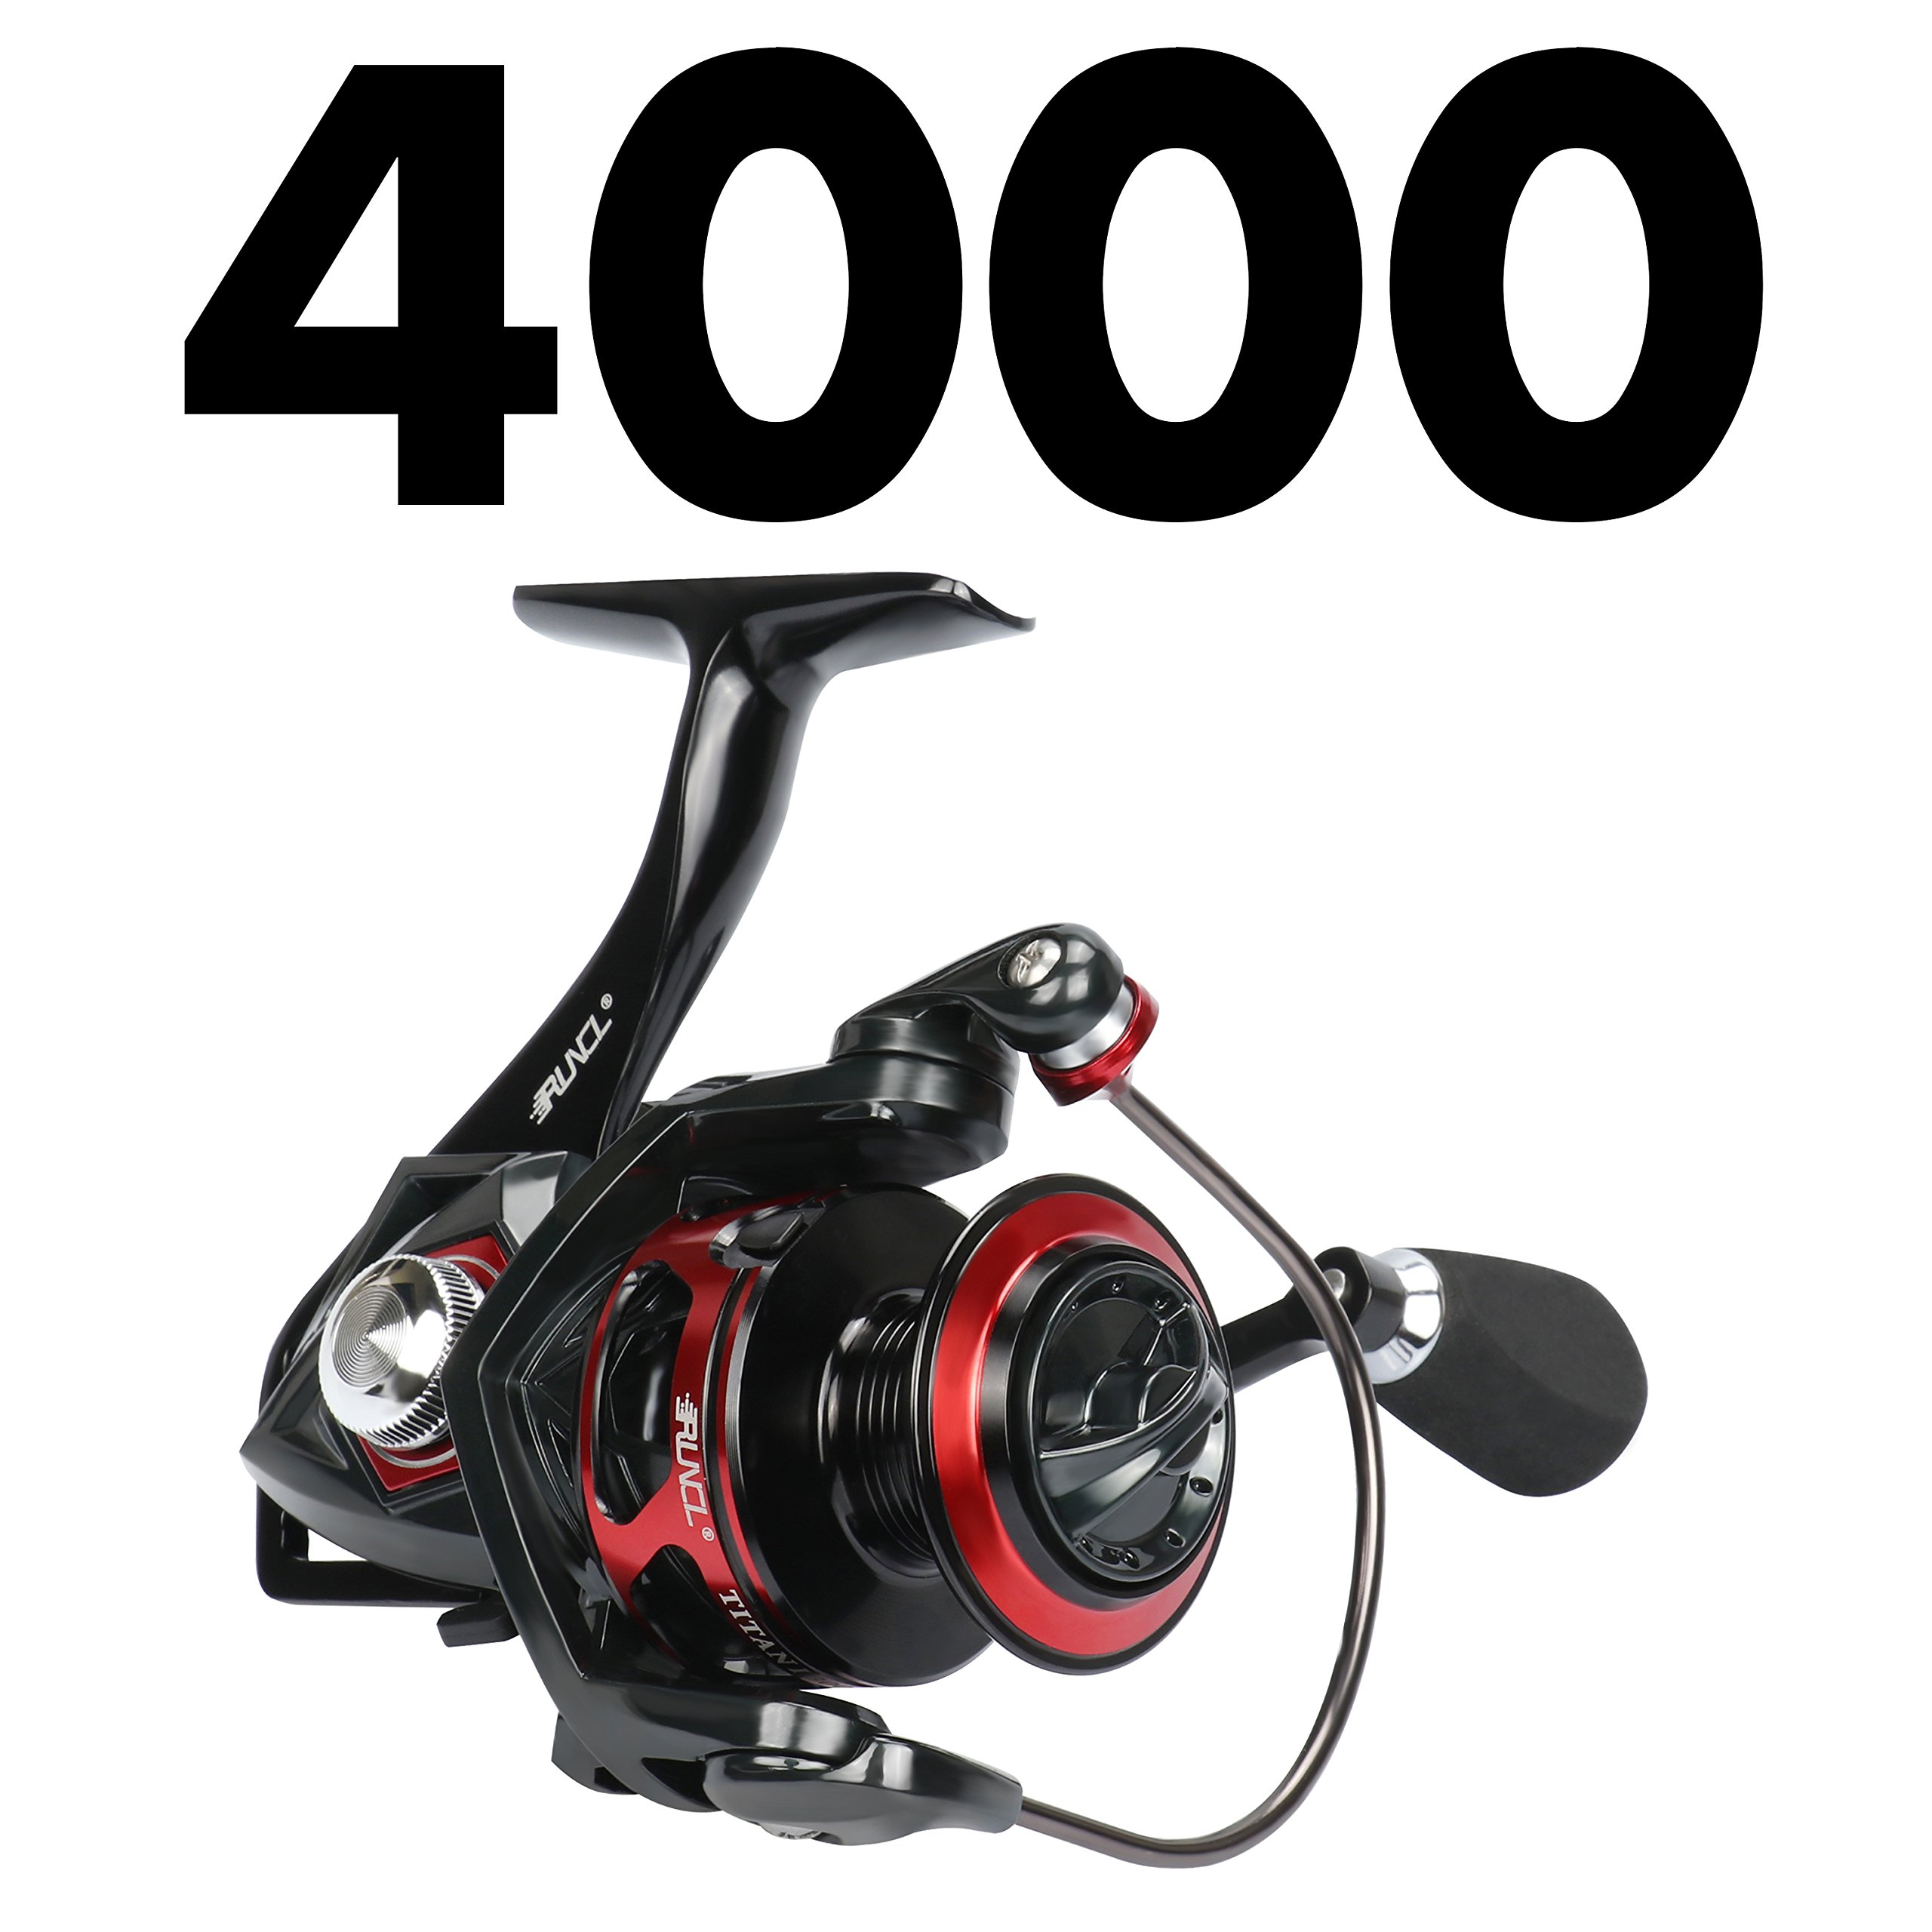 RUNCL Spinning Reel Titan I, Fishing Reel with Full Metal Body, Max Drag 44LB, 5 Carbon Fiber Drag Washers, 9+1 Stainless Steel Shielded Bearings, Hollow Out Rotor for Saltwater and Freshwater (4000) by RUNCL (Image #2)